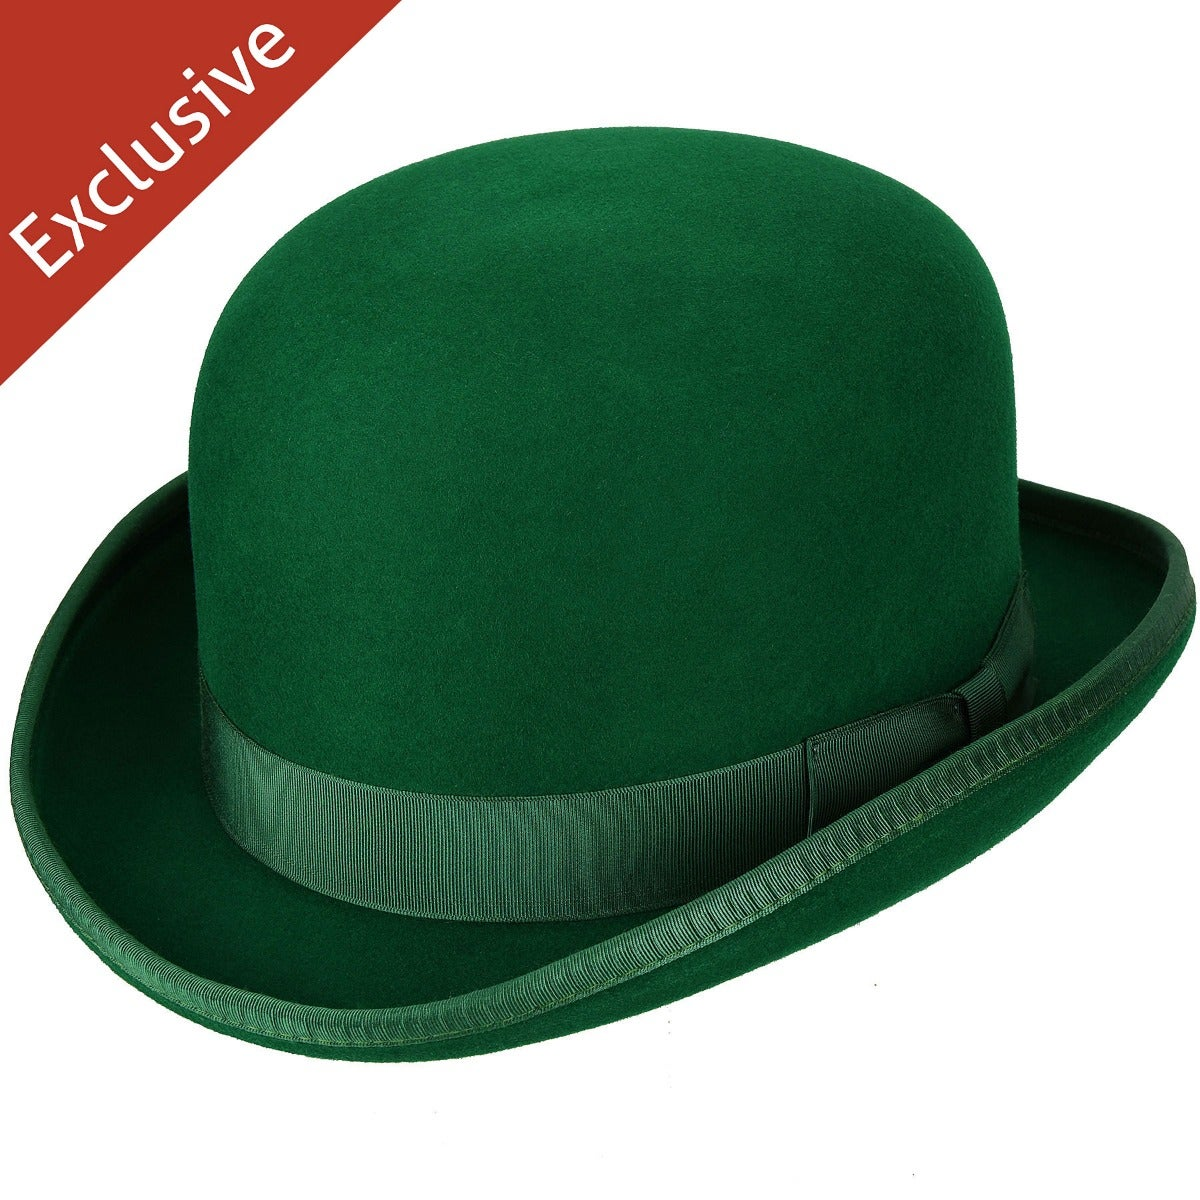 Hats.com Steed Derby Hat - Exclusive in Kelly Green